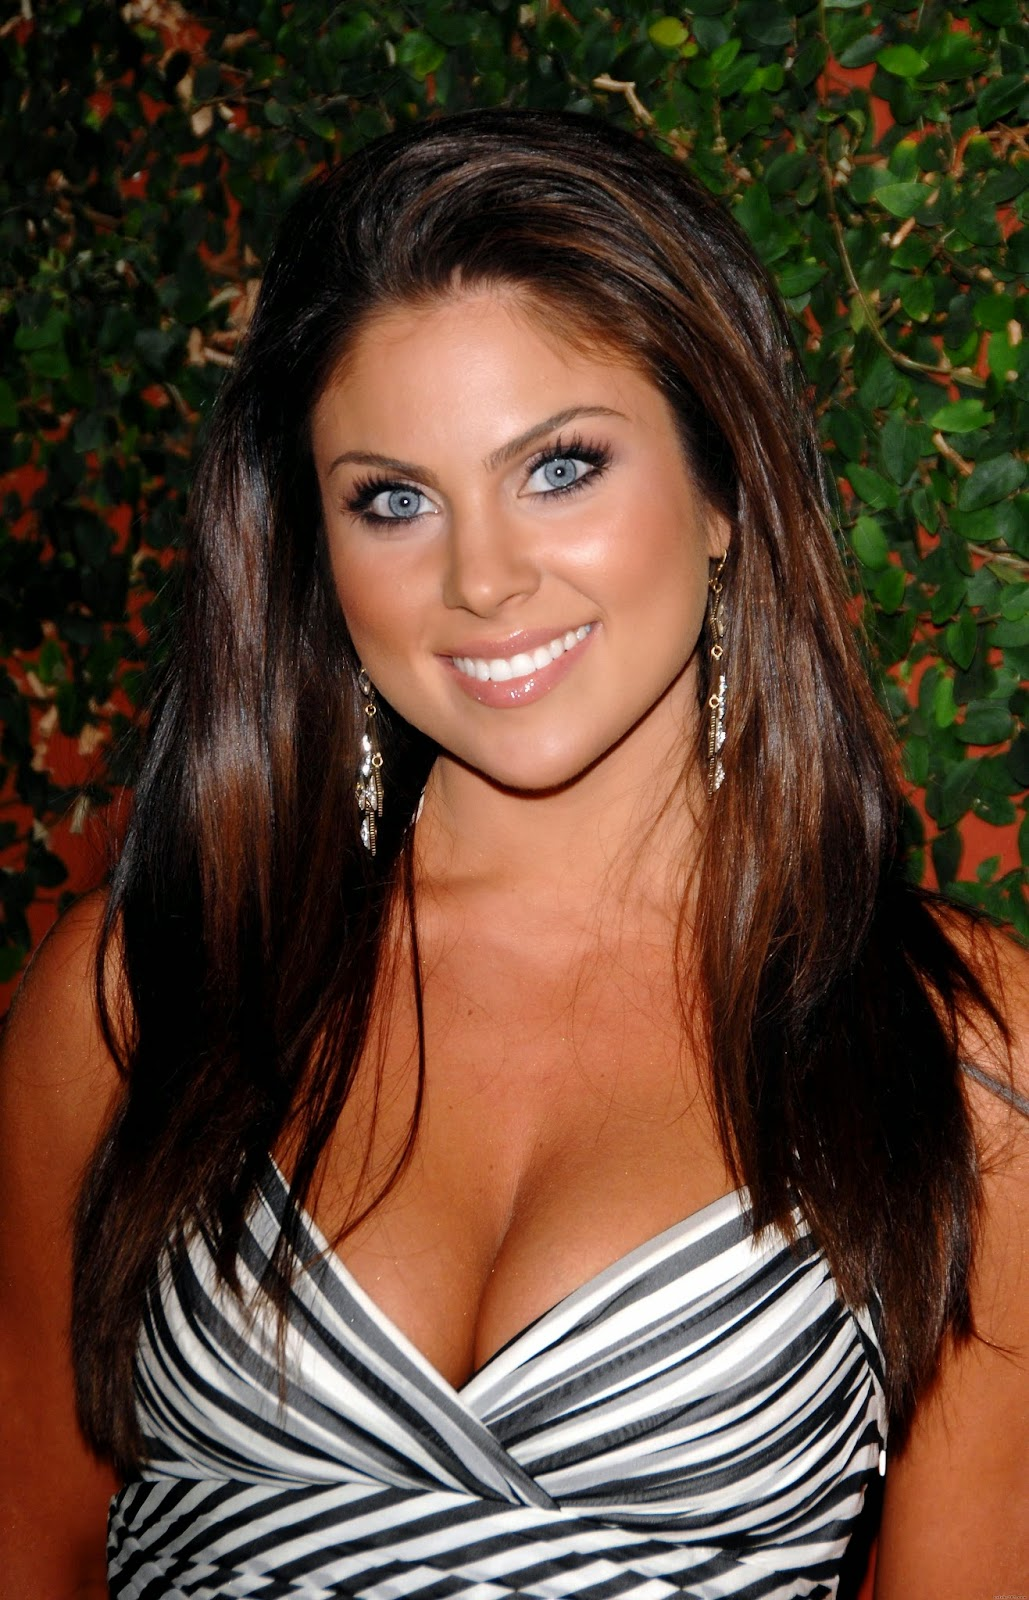 Can Nadia bjorlin sex agree, the